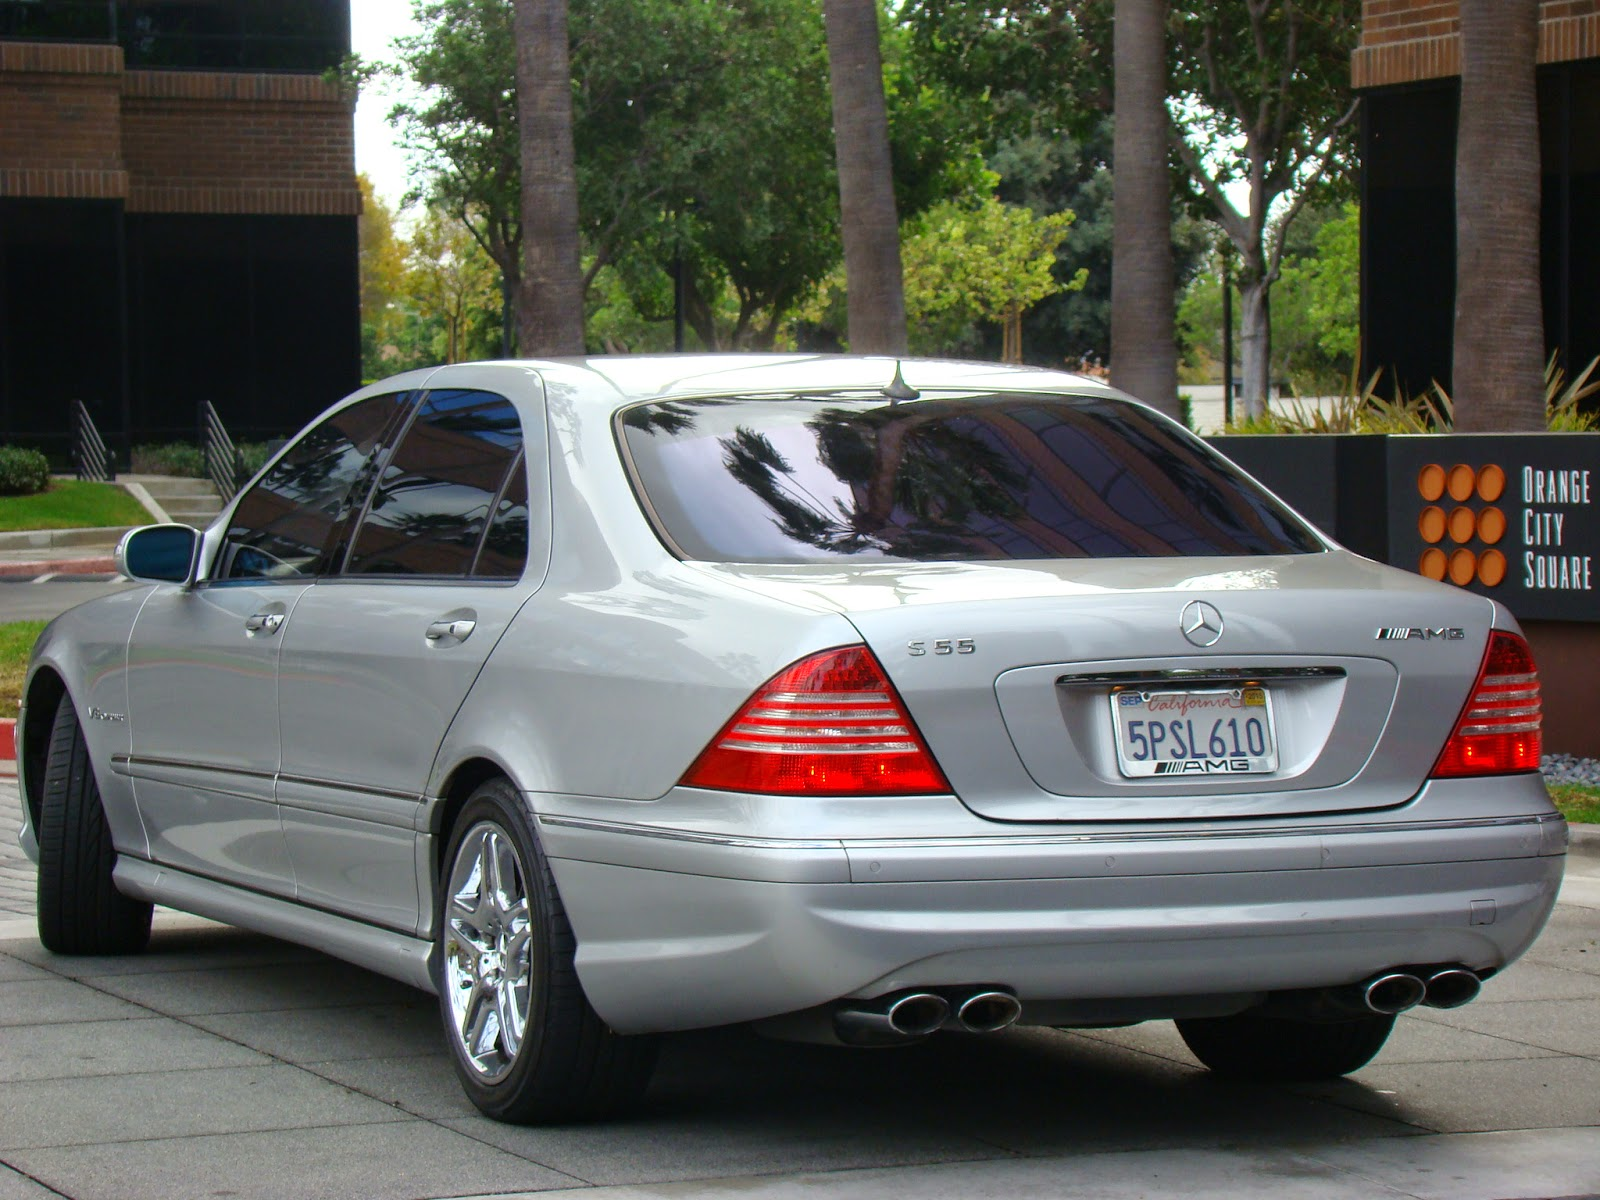 Daily turismo 15k fast class 2003 mercedes benz s55 amg w220 see another big flagship sedan for sale tipsdailyturismo sciox Image collections